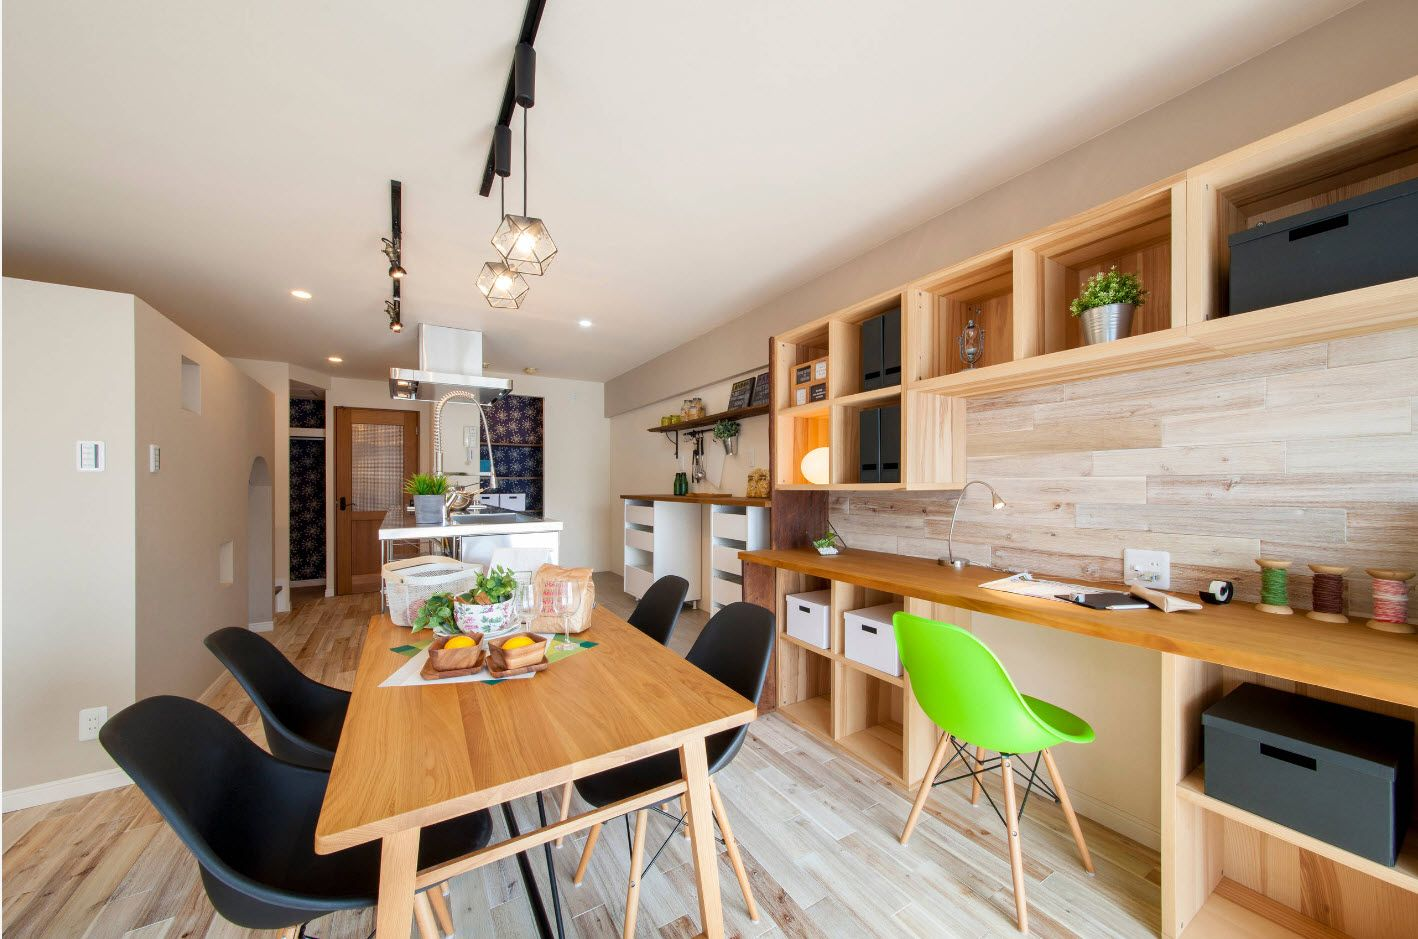 Top 100 Modern Home Office Design Trends 2017. Light wooden top shelving and wooden table